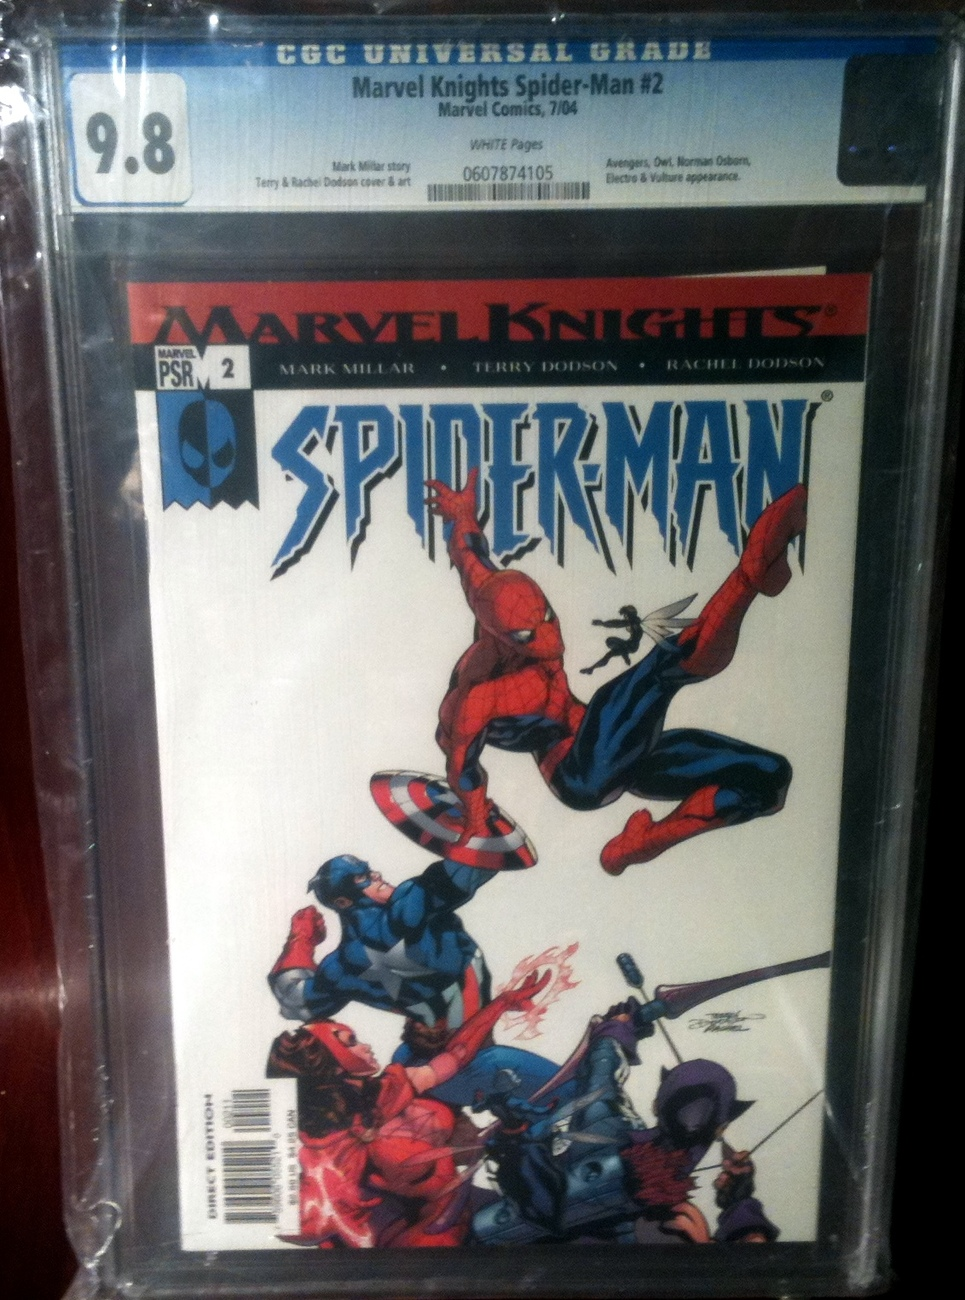 Marvel Knights Spider-Man # 2 CGC Graded 9.8 NM++